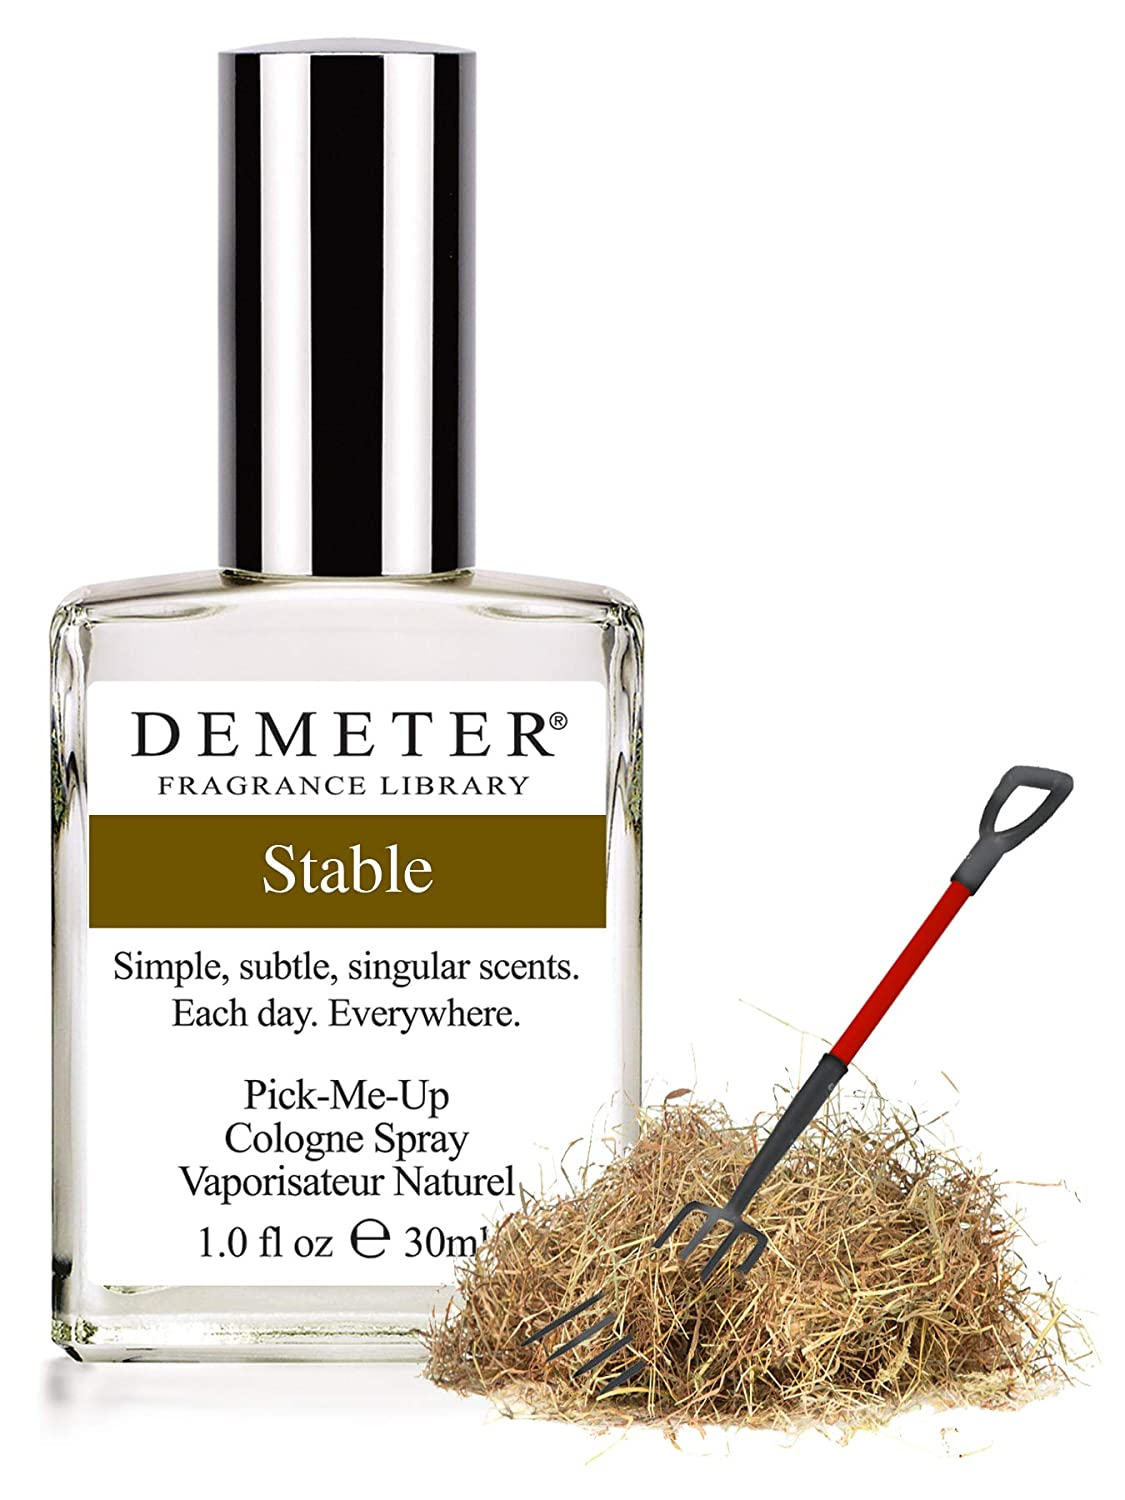 Demeter Fragrance Library - Stable - 1 Ounce / 30 ml Cologne Spray